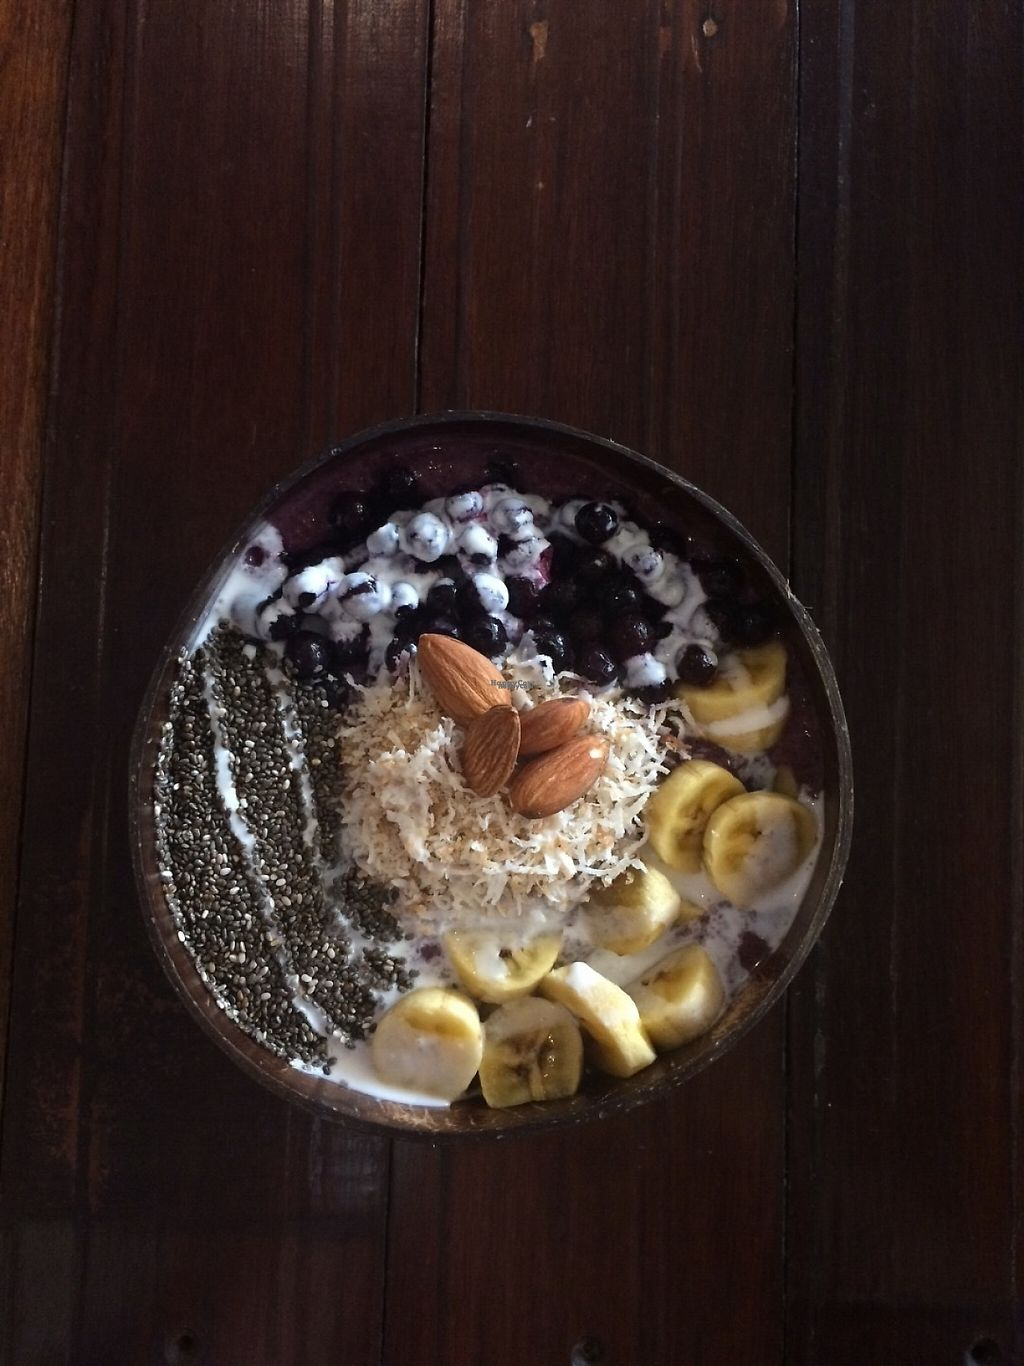 """Photo of CLOSED: Fruto Juice Bar  by <a href=""""/members/profile/sydneyhumble"""">sydneyhumble</a> <br/>Buri buri smoothie bowl  <br/> March 25, 2017  - <a href='/contact/abuse/image/89136/240766'>Report</a>"""